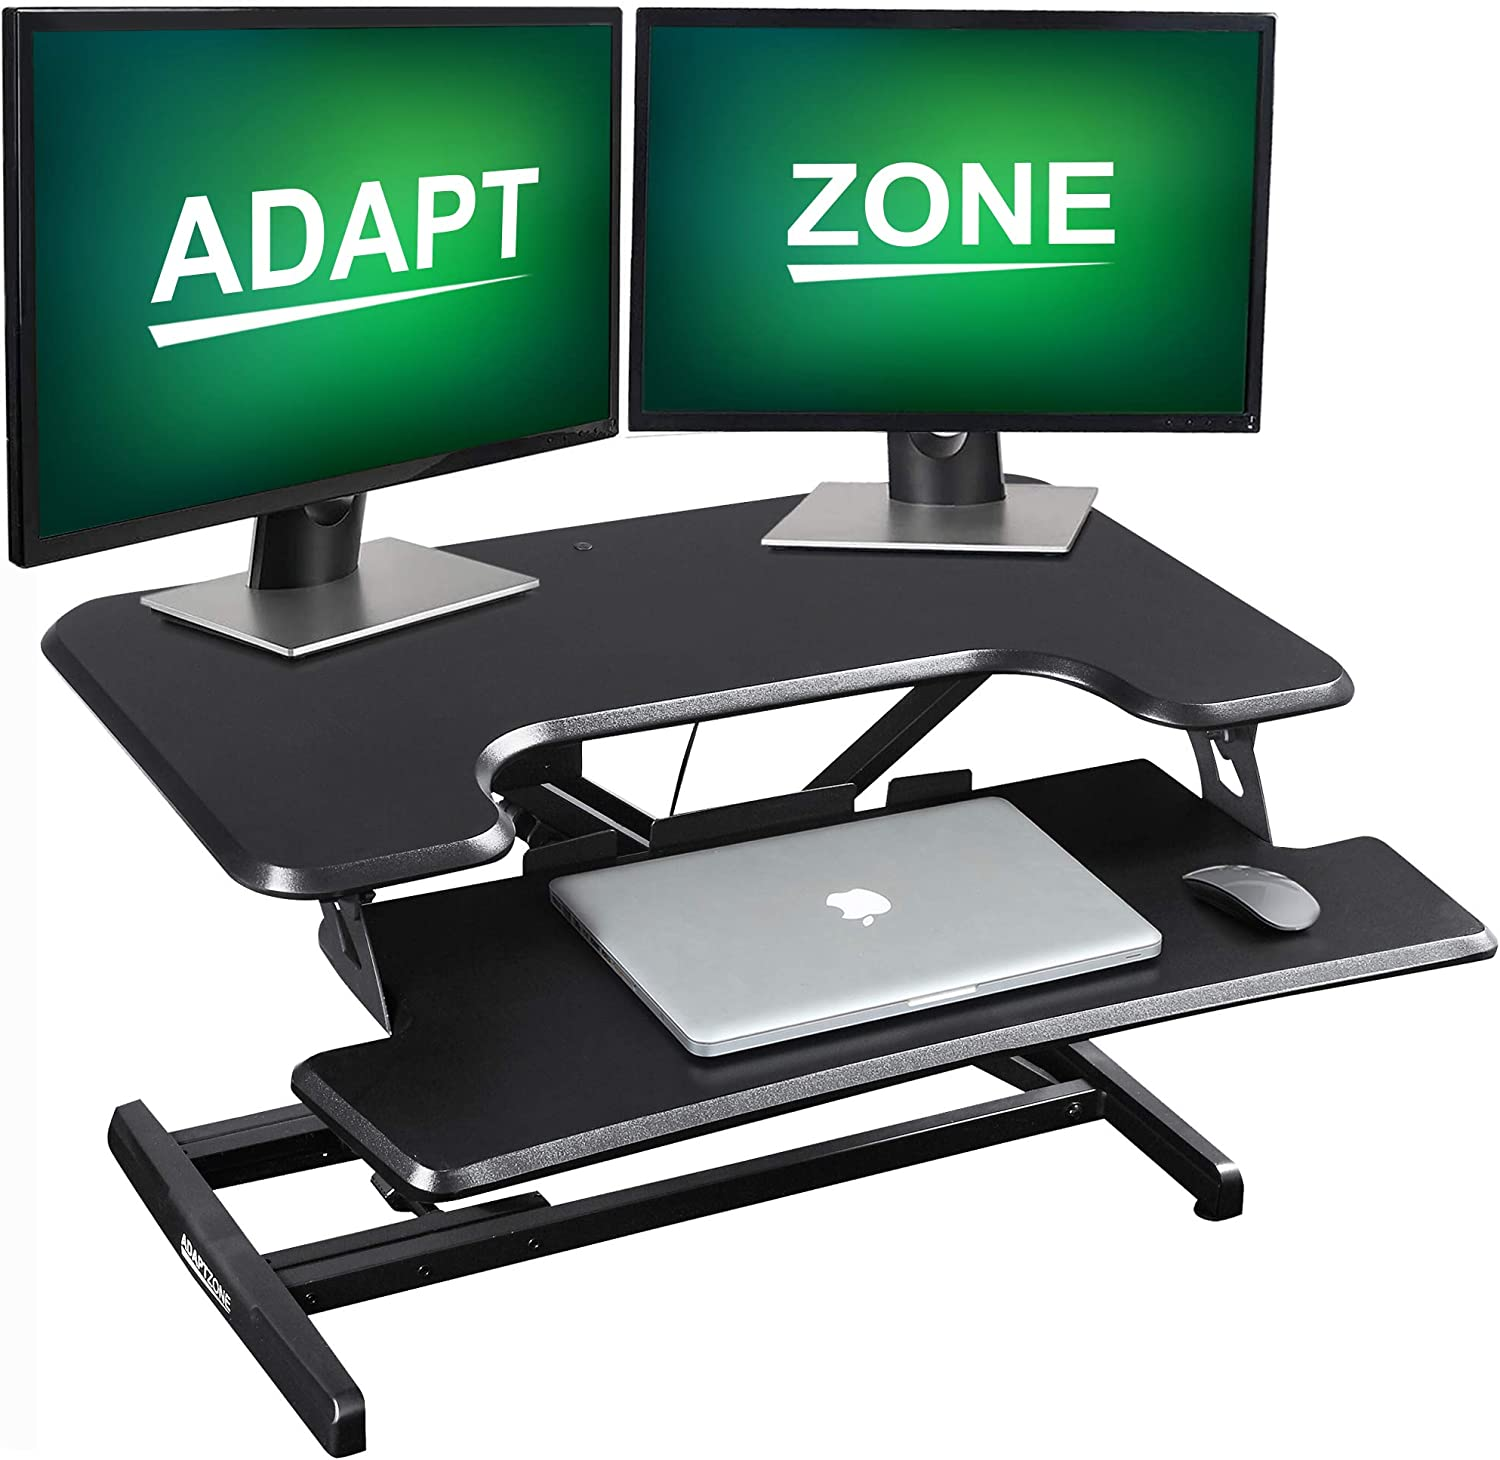 ADAPTZONE Height Adjustable Standing Desk Converter - 33 Inch Ergonomic Sit Stand Up Desk – Laptop Riser, Dual Monitor Home Office Workstation